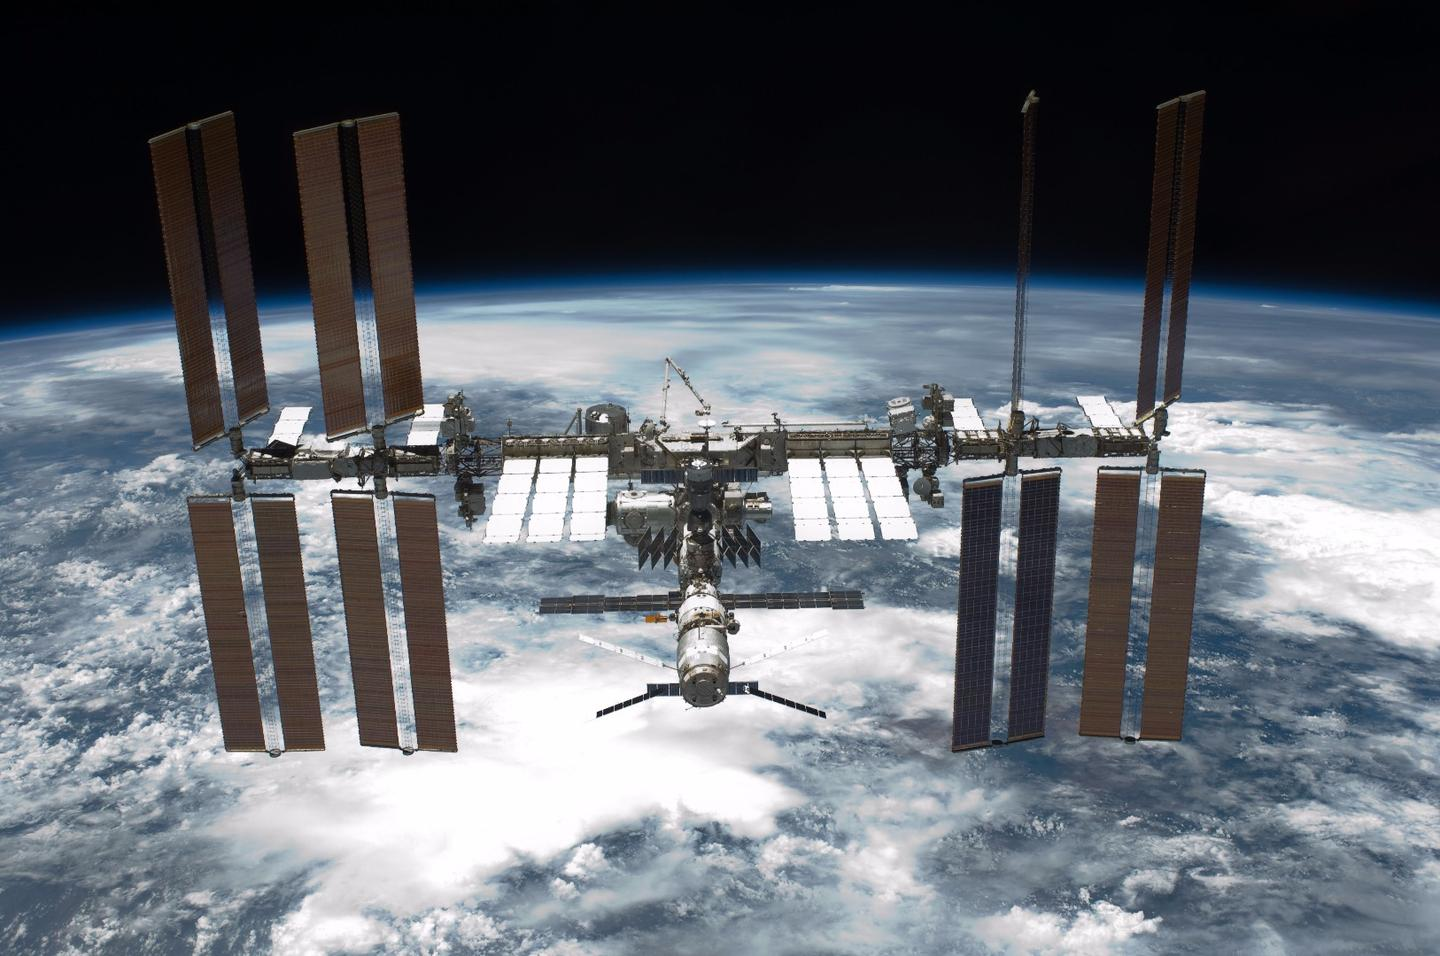 Astronauts aboard the International Space Station experience a significant reduction in physical fitness due toa decrease in the circulation of oxygen in the body